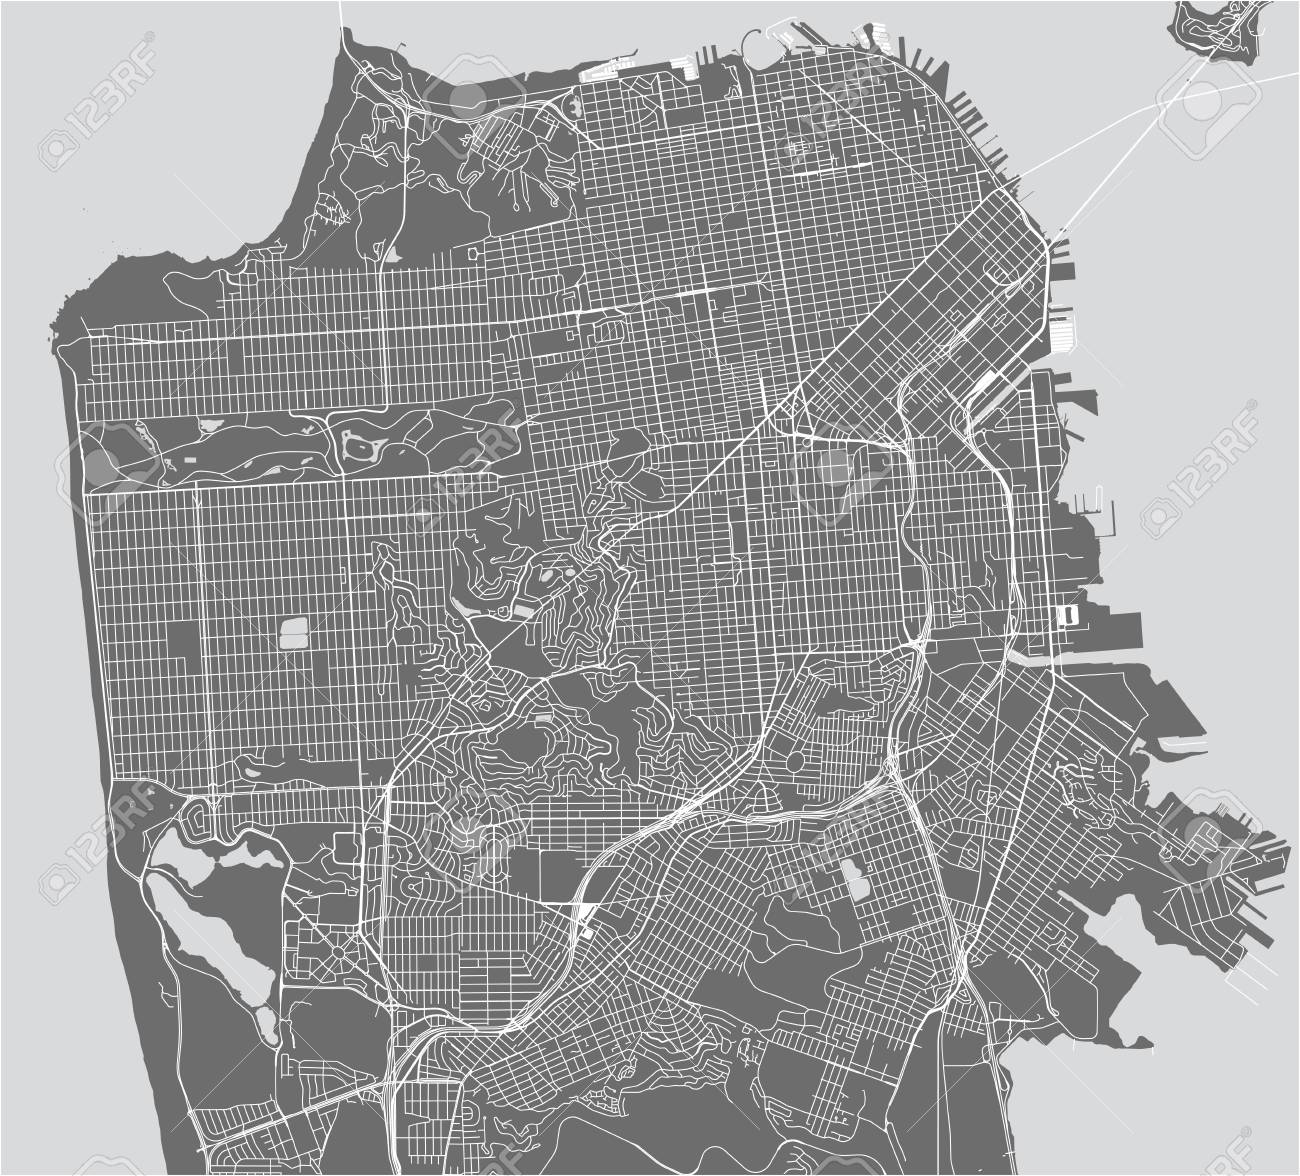 vector map of the city of San Francisco, USA on porterville city street map, springfield city street map, irvine city street map, san pablo city street map, santa clara county street map, jackson city street map, austin city street map, tacoma city street map, medford city street map, aurora city street map, snohomish city street map, wichita city street map, new haven city street map, inglewood city street map, ithaca city street map, napa city street map, flagstaff city street map, johannesburg city street map, billings city street map, madison city street map,